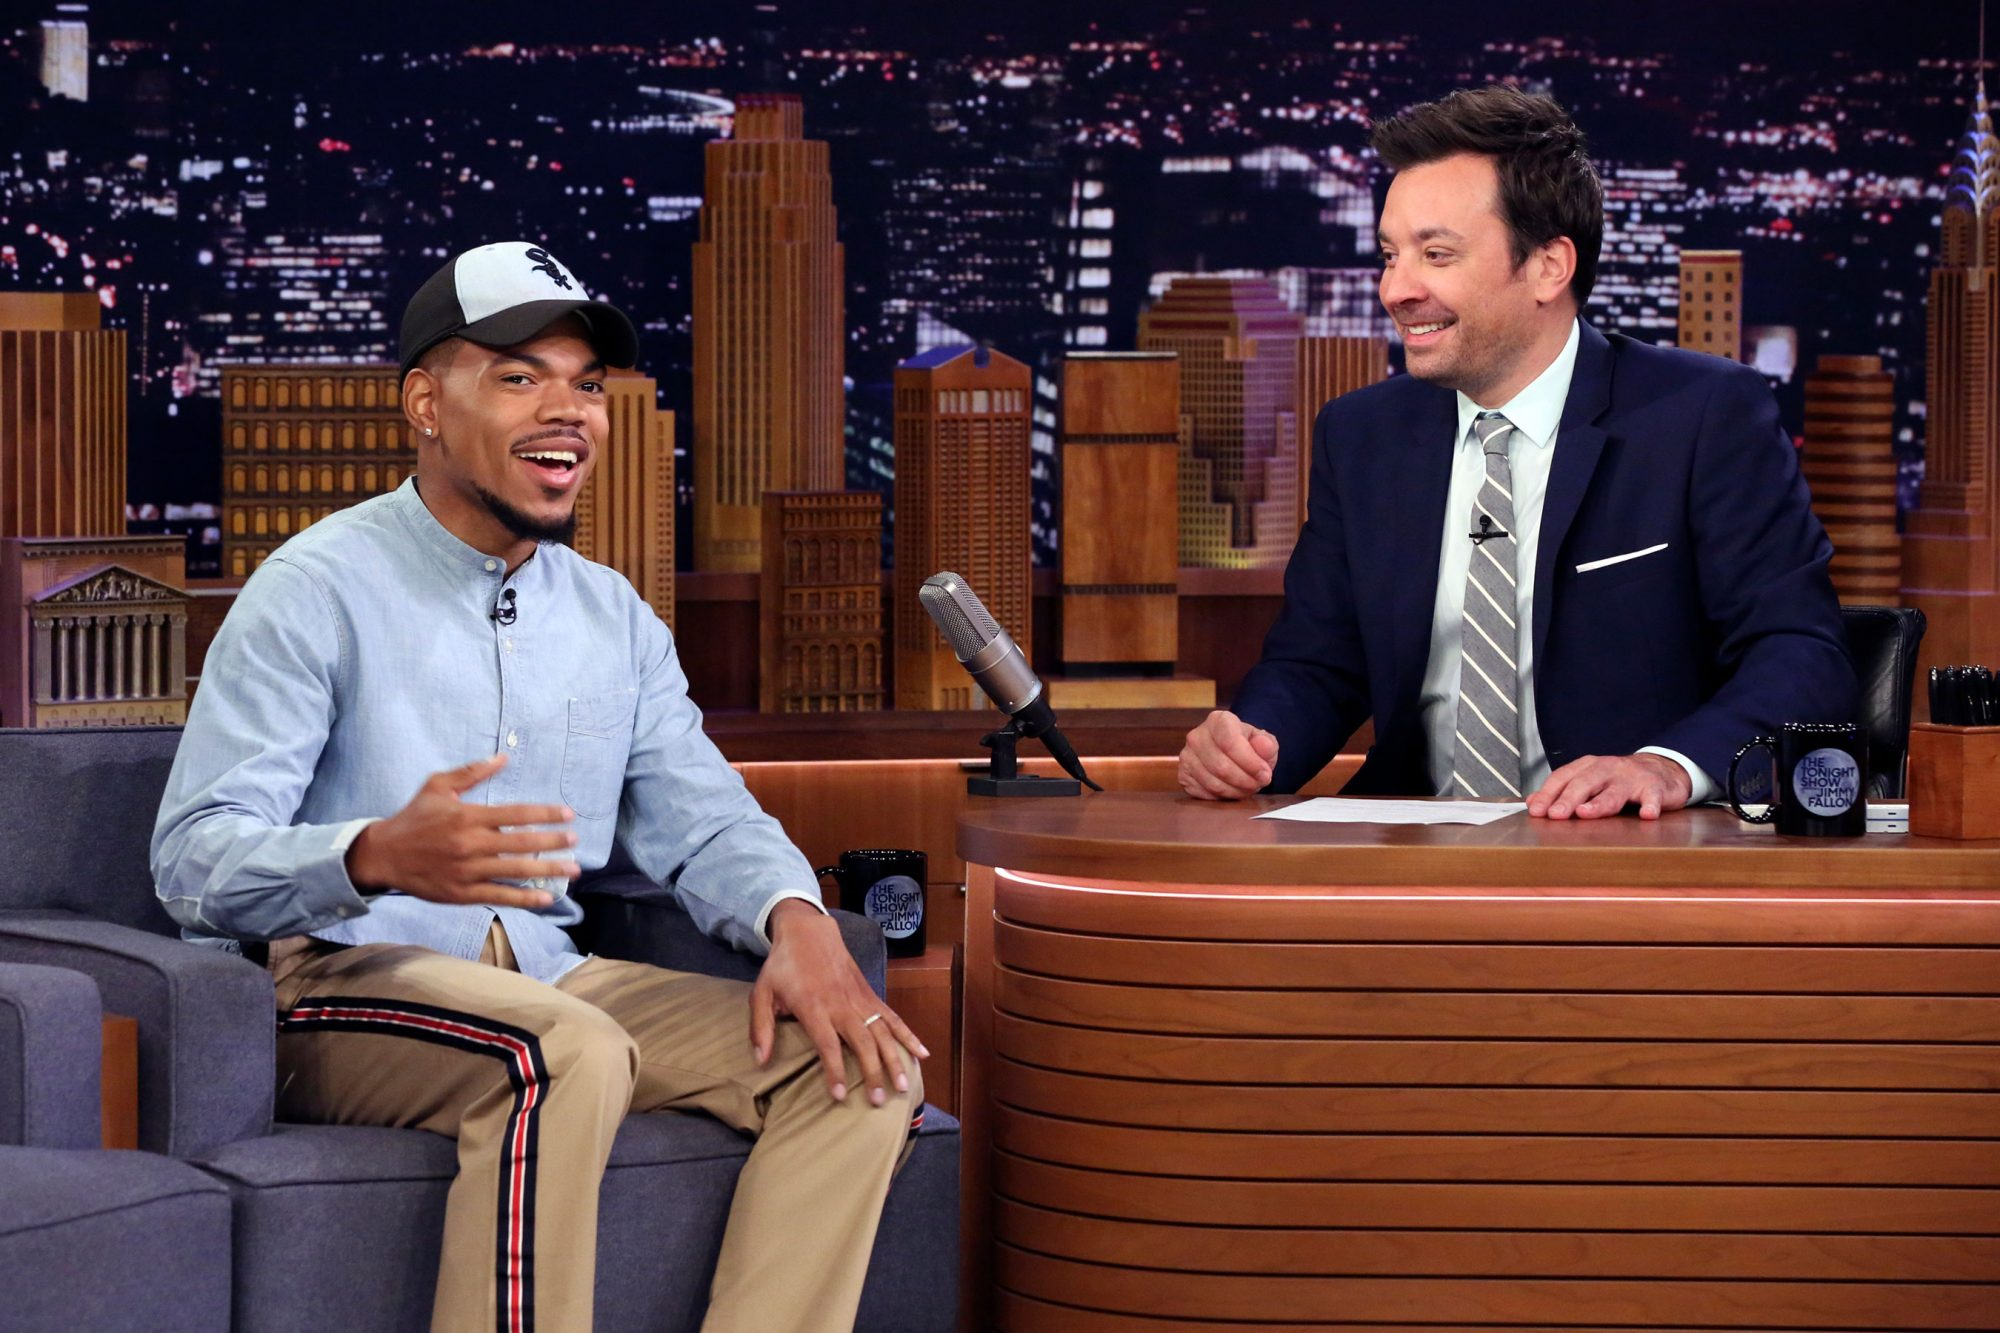 THE TONIGHT SHOW STARRING JIMMY FALLON Chance The Rapper